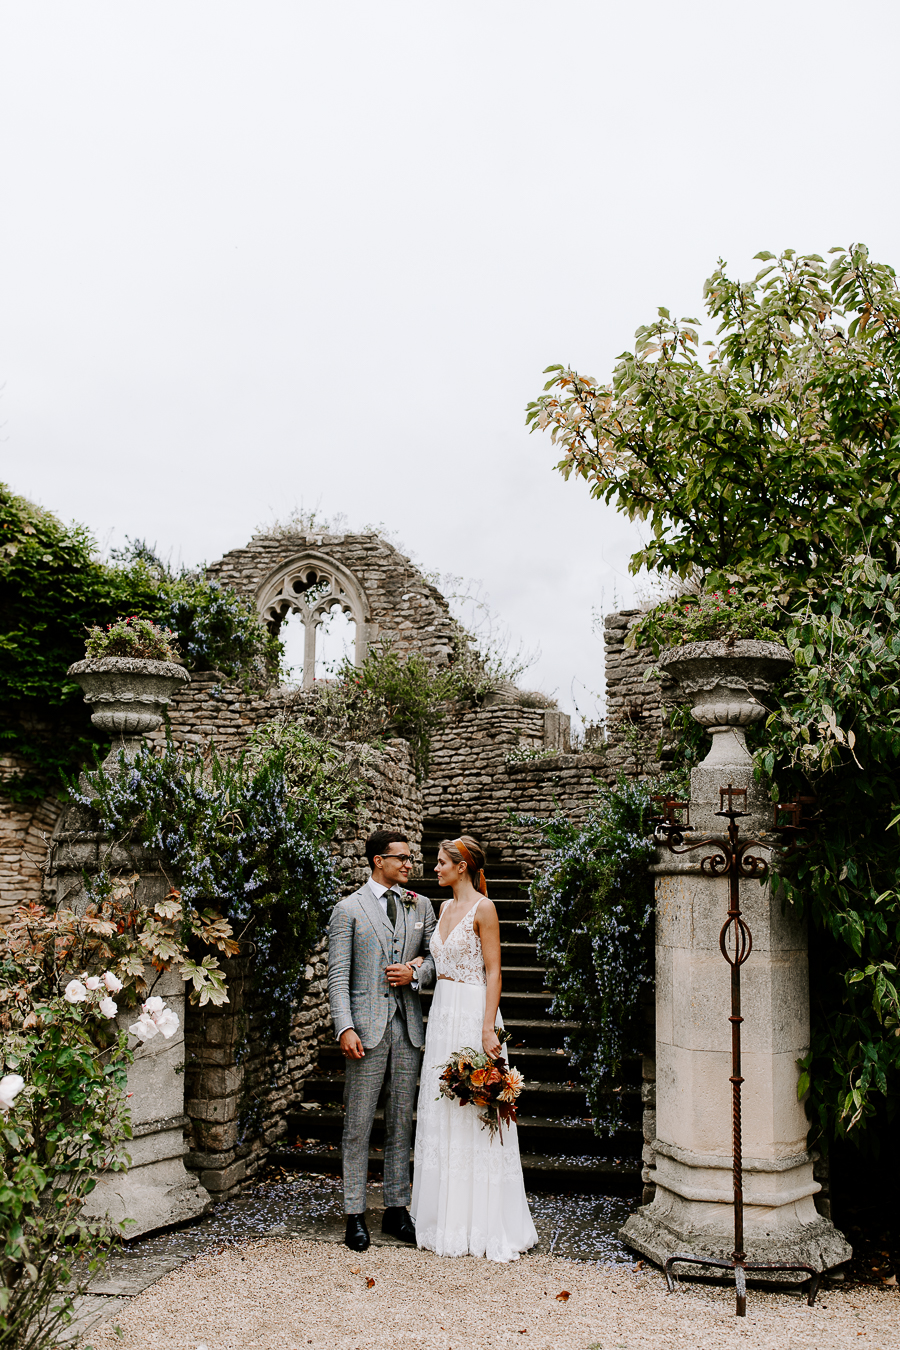 A magical wiltshire wedding venue - the Lost Orangery with Sam Cook Photography (28)